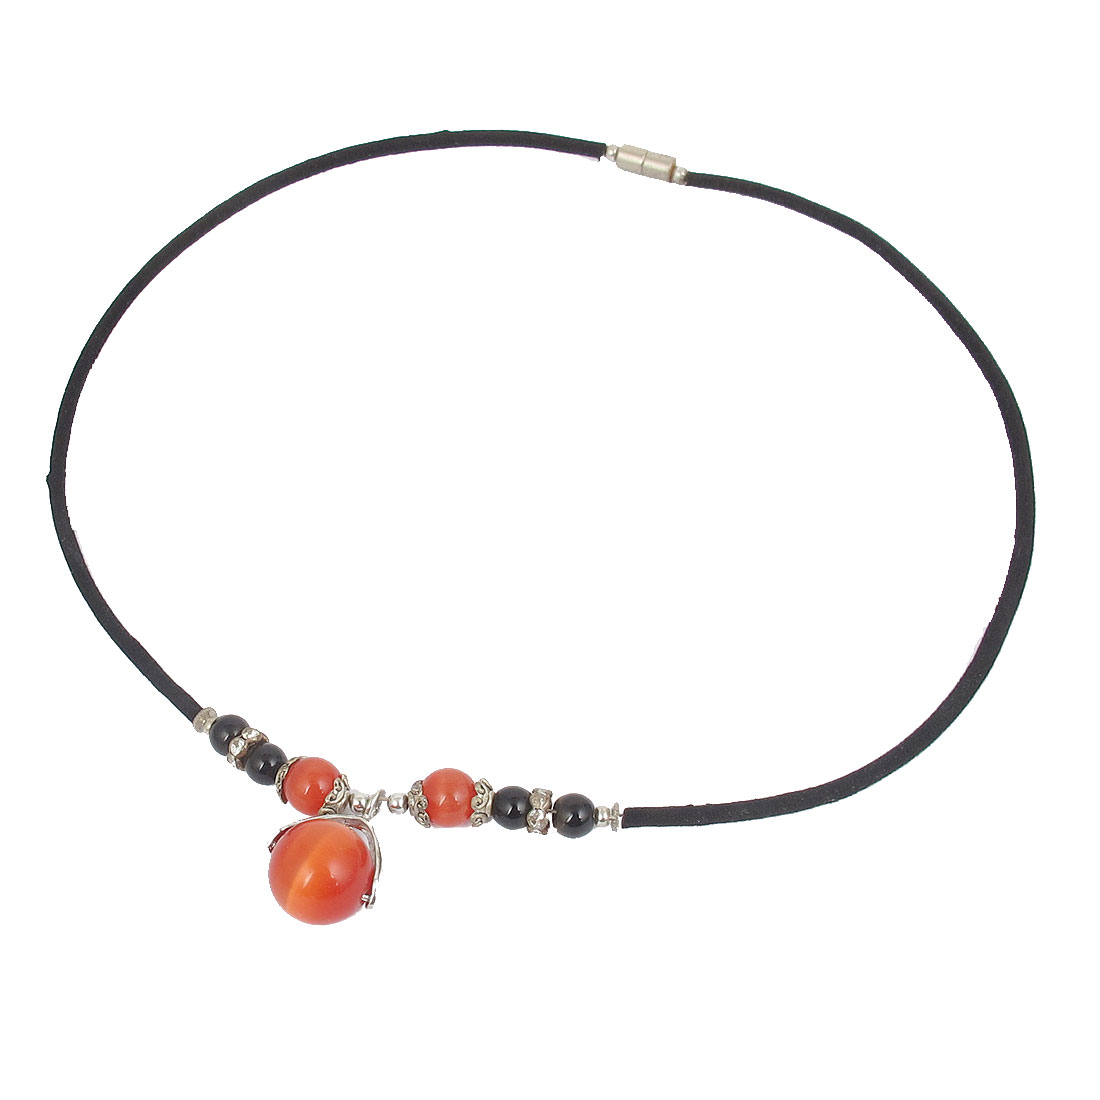 14mm OD Round Opal Bead Pendant Neck Ornament Necklace Red Black for Lady